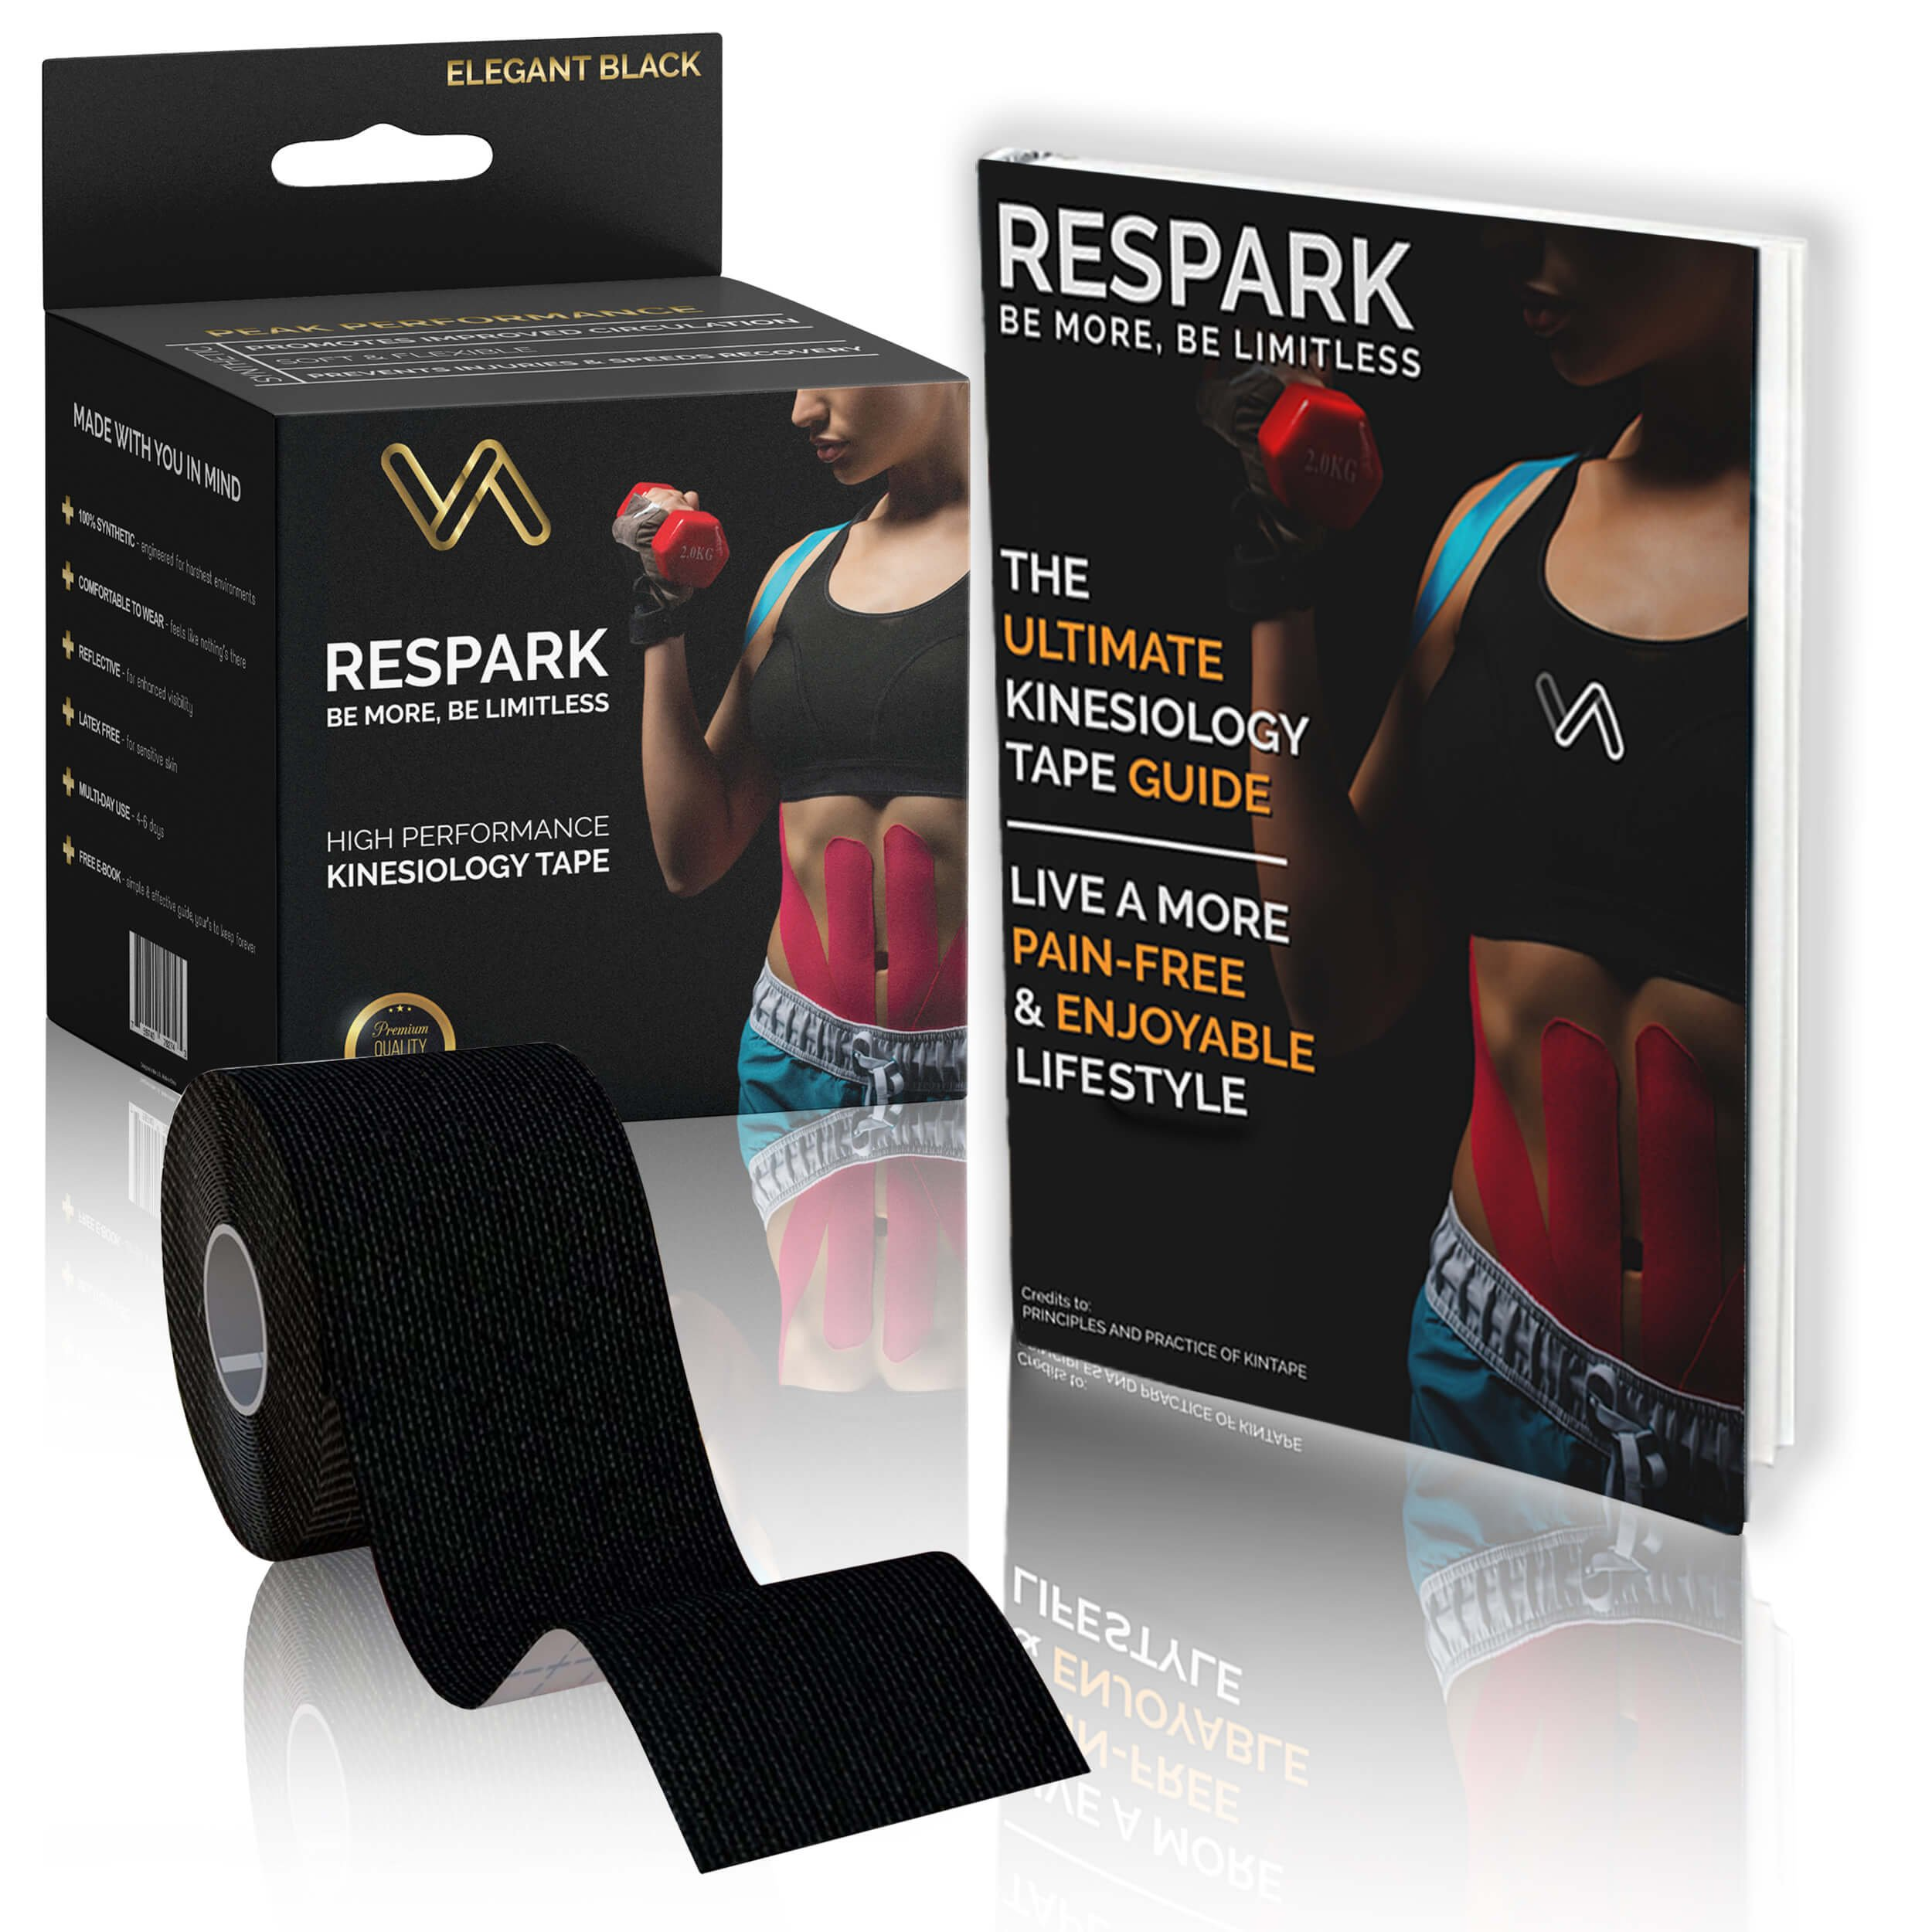 Kinesiology Tape by Respark Athletics, 5cm x 5cm Roll Uncut, 100% Synthetic Water Resistant, Reduce Pain, Sport Therapeutic Aid & Injury Recovery, Includes Ultimate Step by Step E-Guide, Best Tape